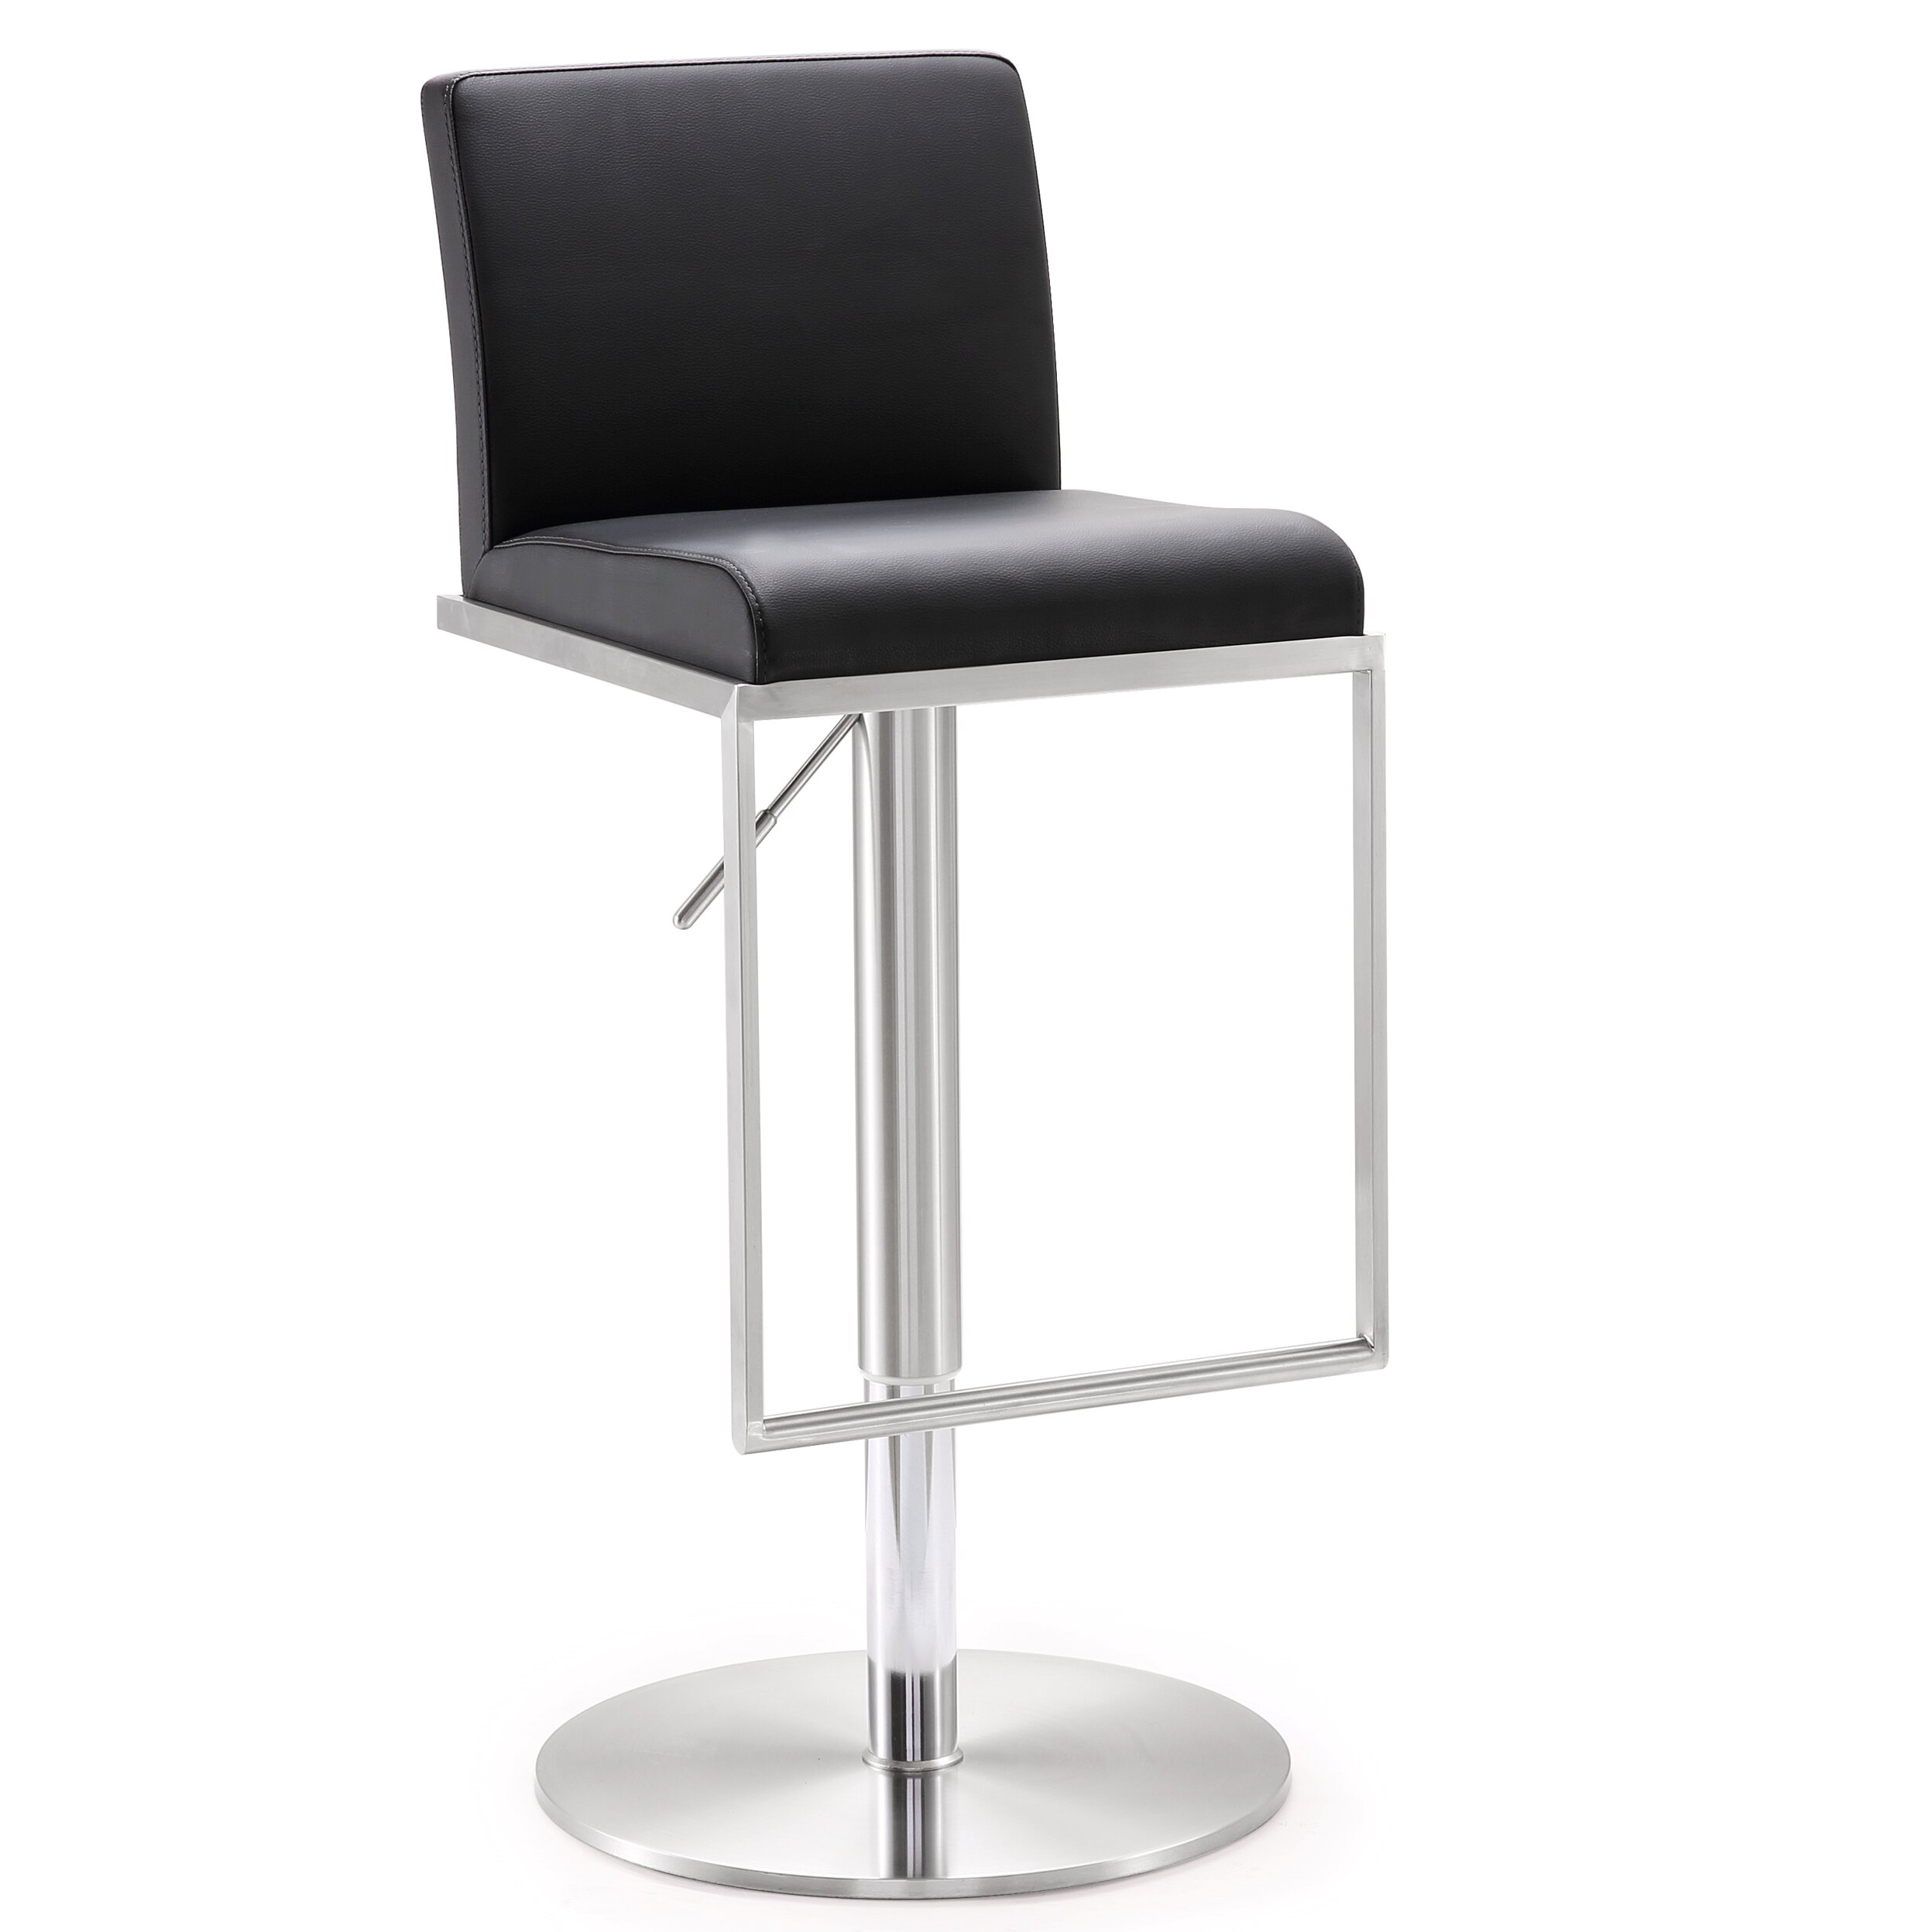 adjustable height swivel bar stool with cushion reviews wayfair